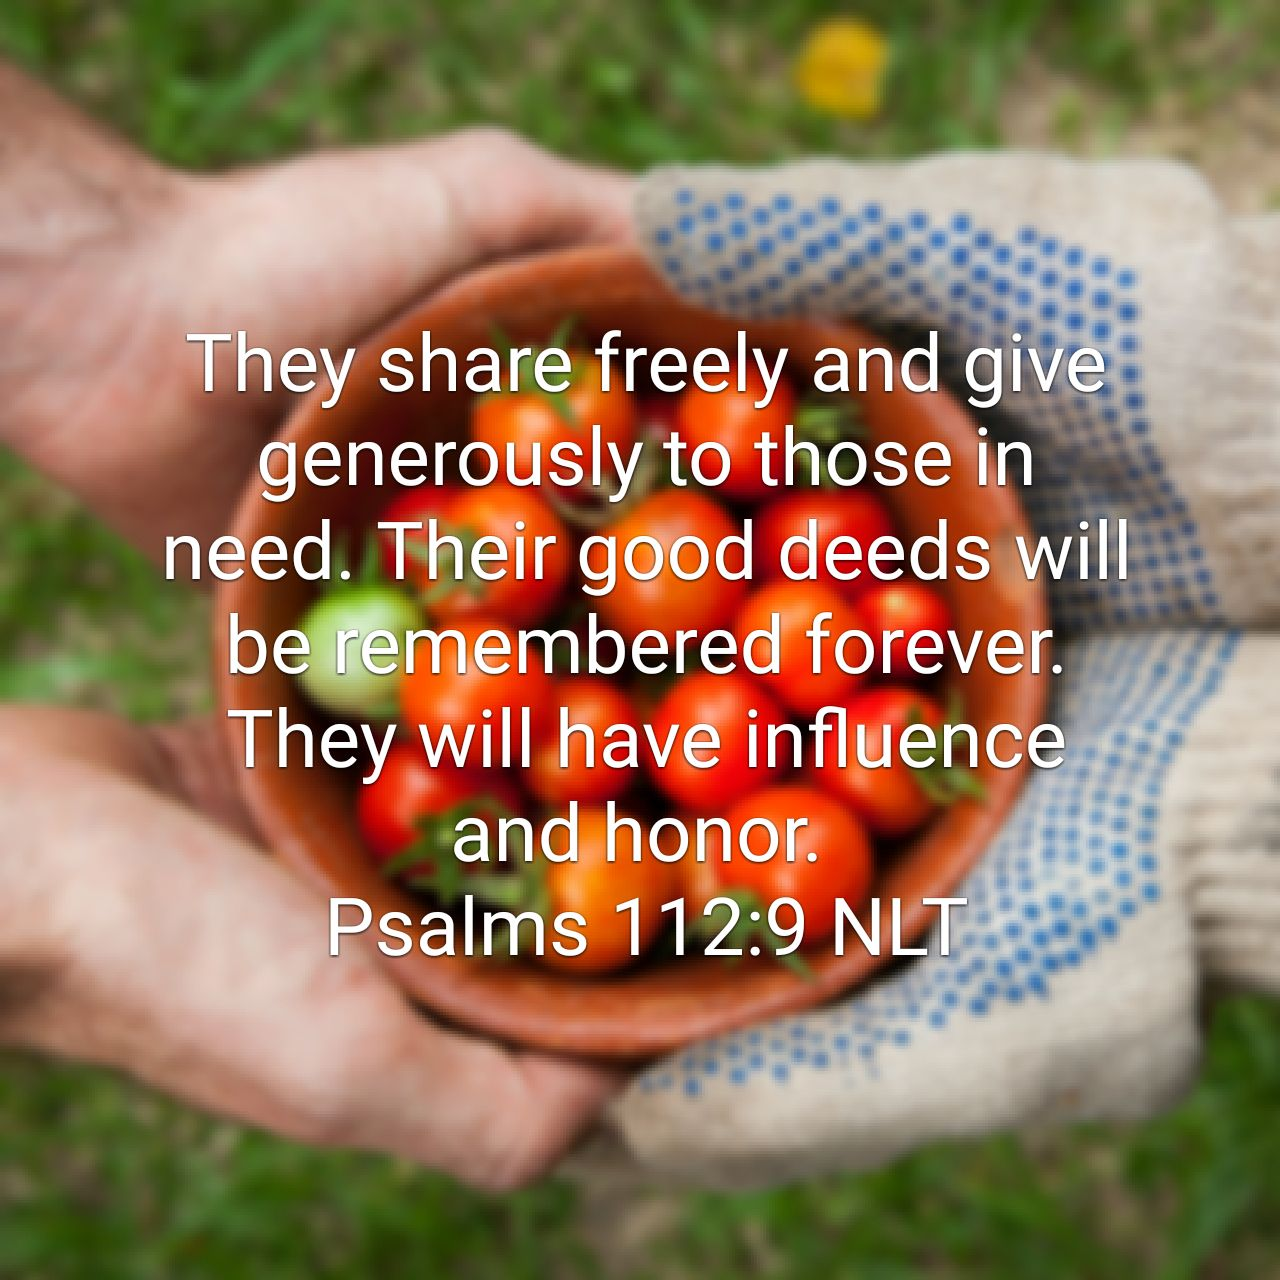 They share freely and give generously to those in need. Their good deeds will be remembered forever. They will have influence and honor. - Psalms 112:9 NLT